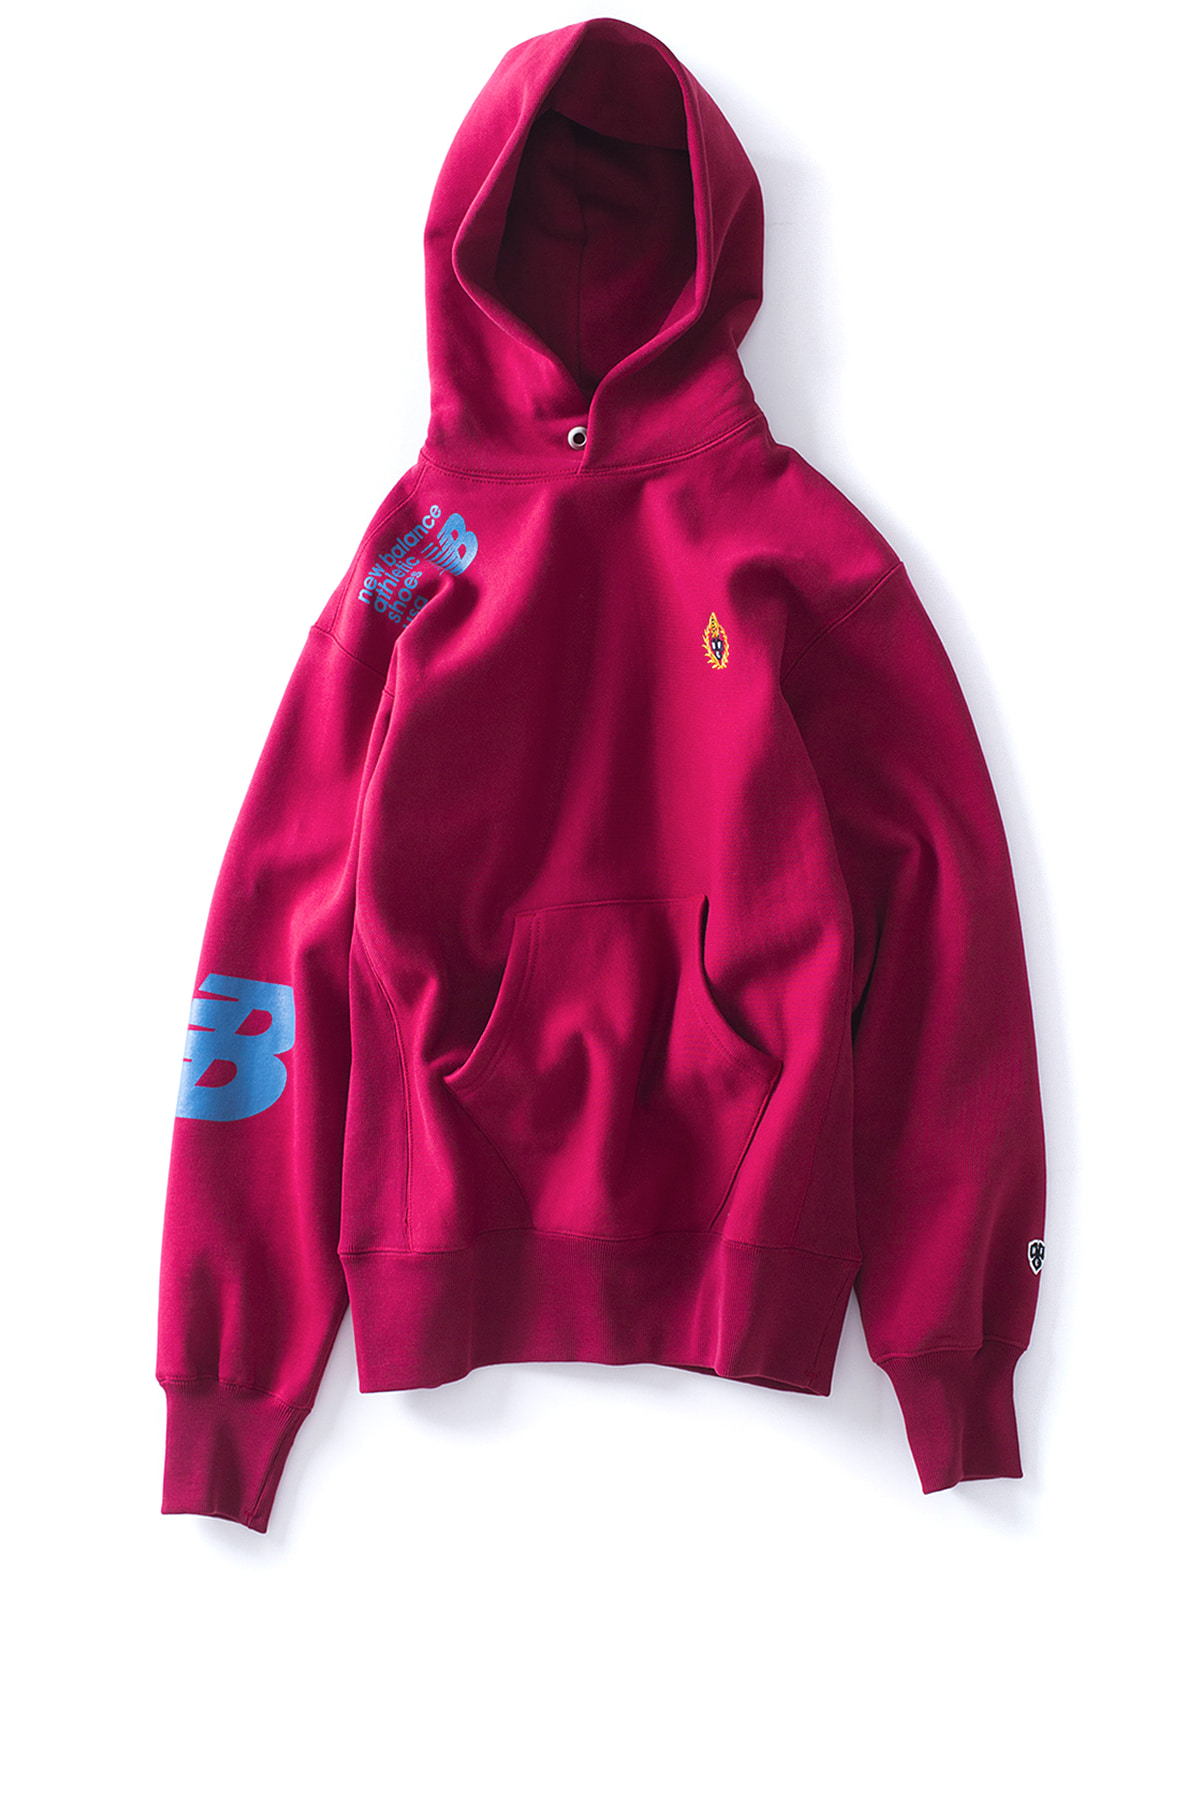 NB X Heritage Floss : Locker Room Hoodie (Burgundy)